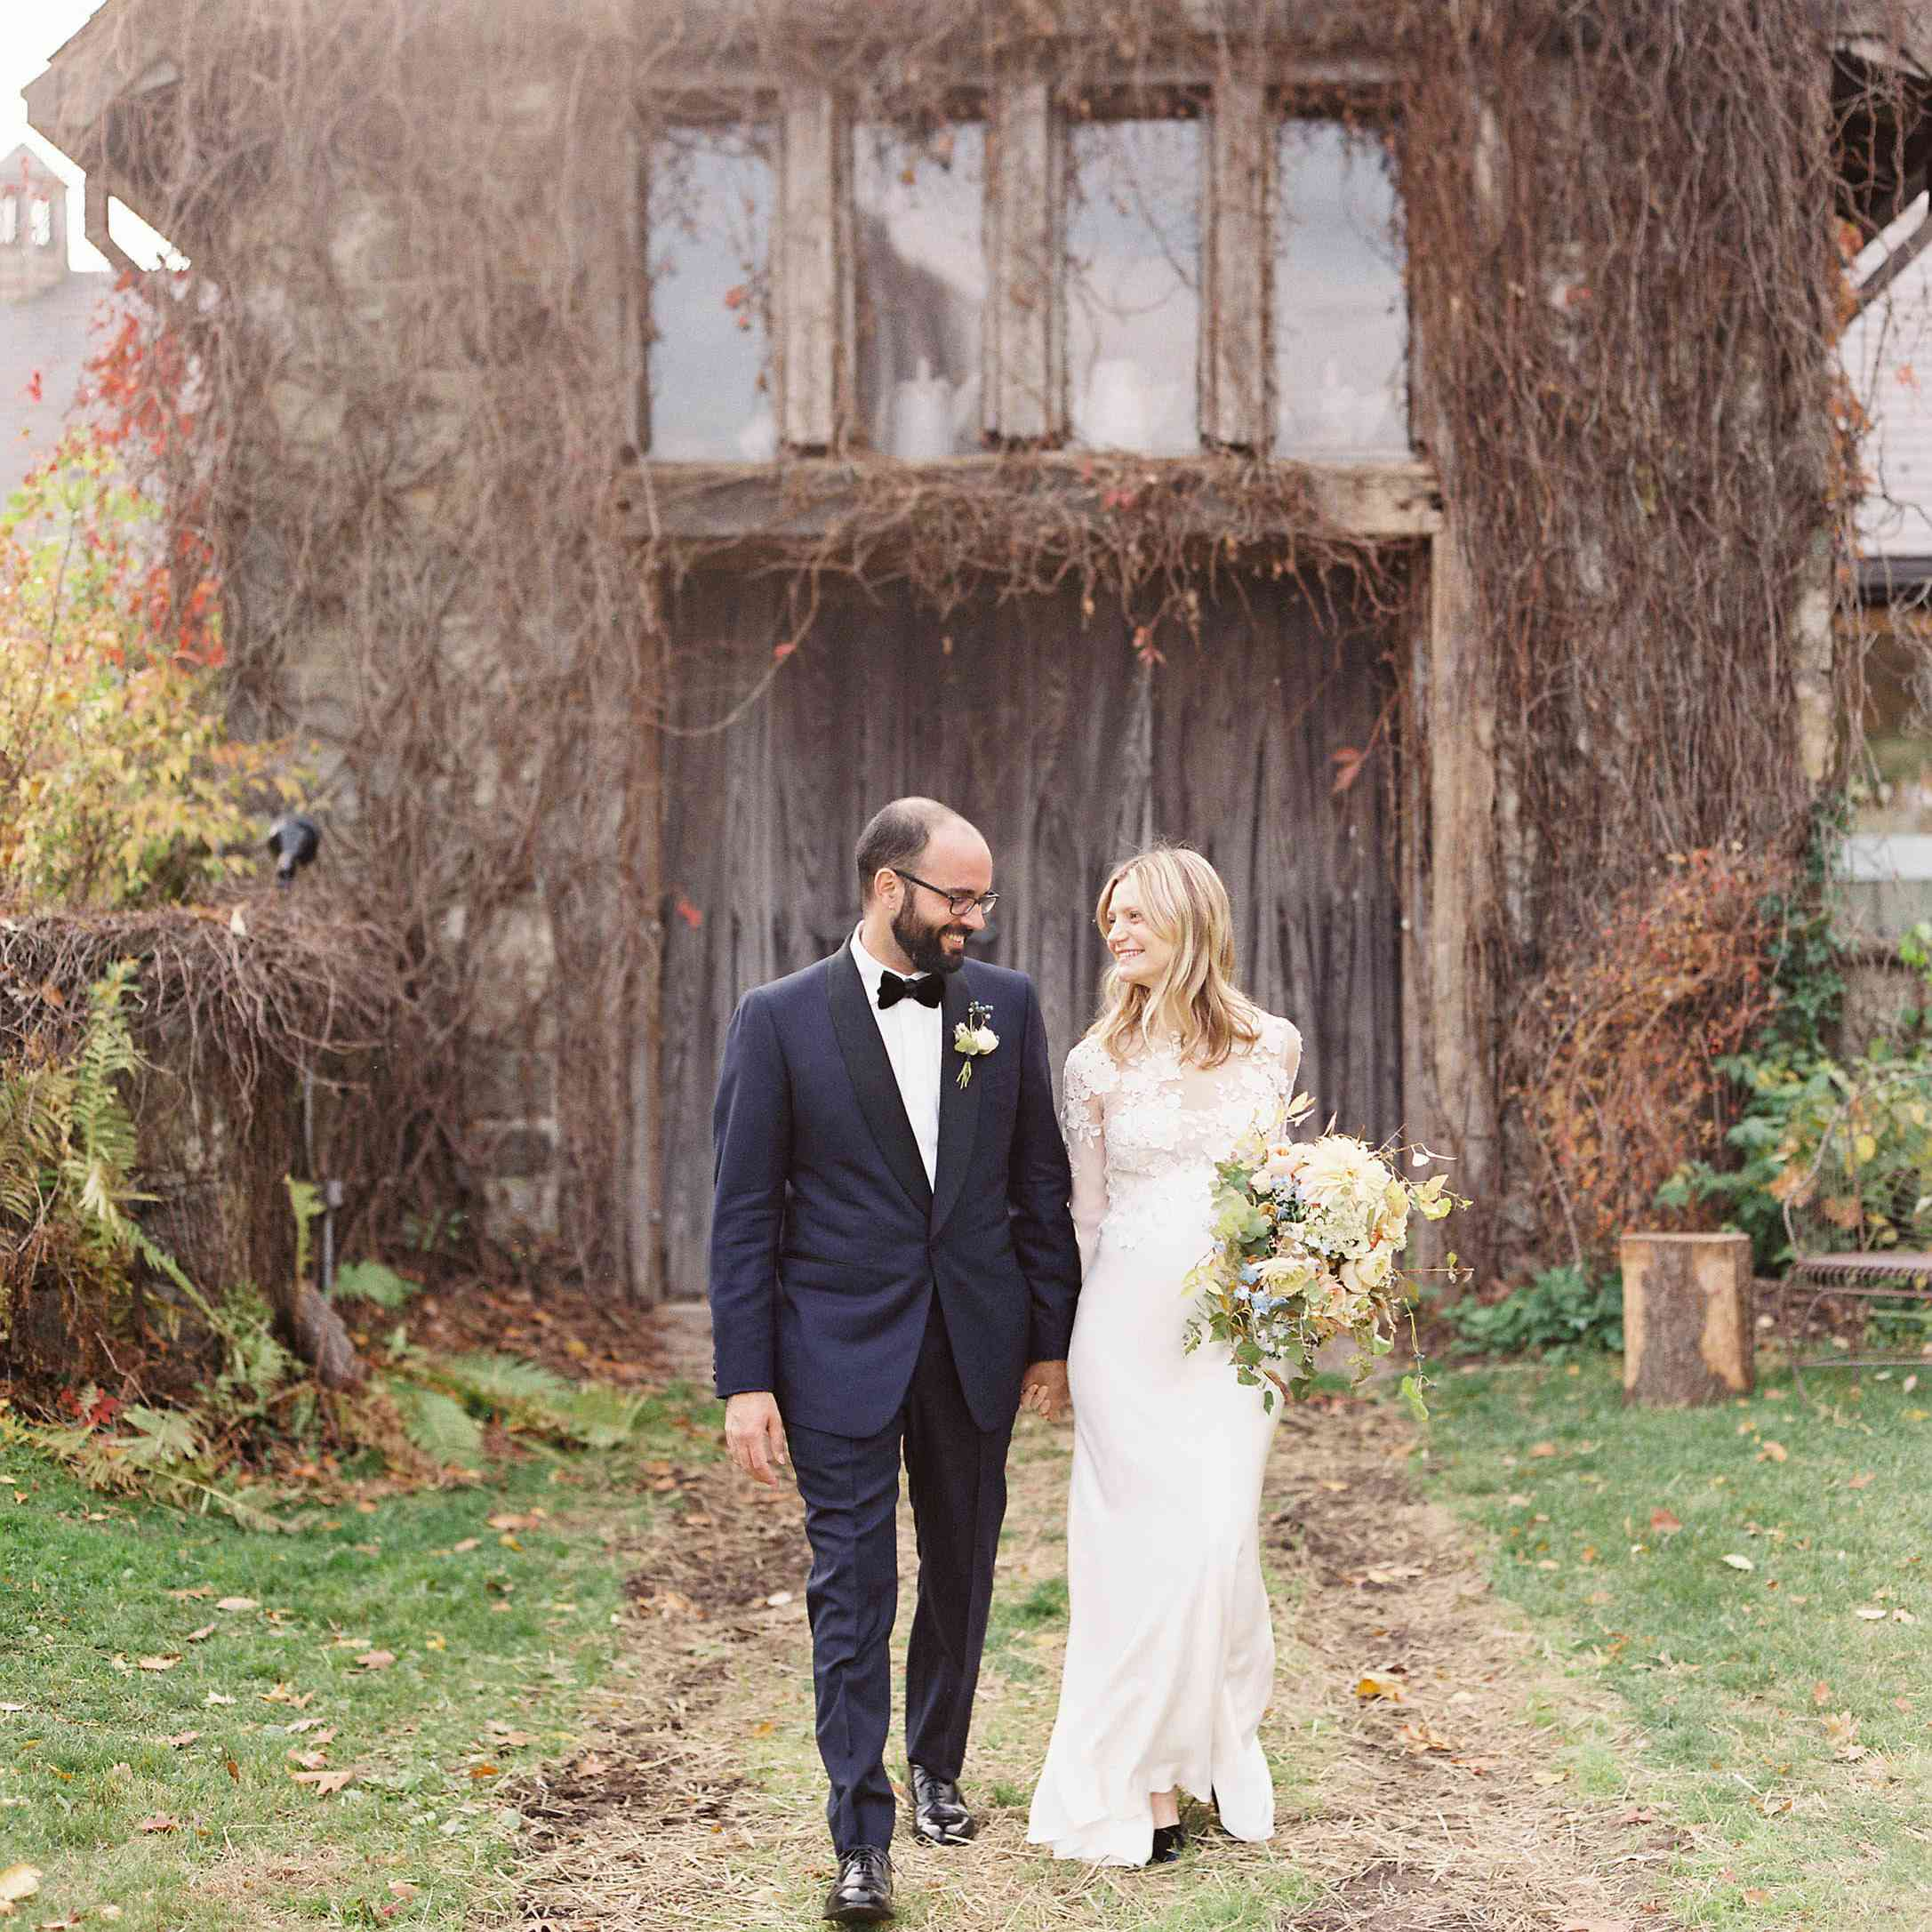 <p>Bride and groom outside barn</p><br><br>